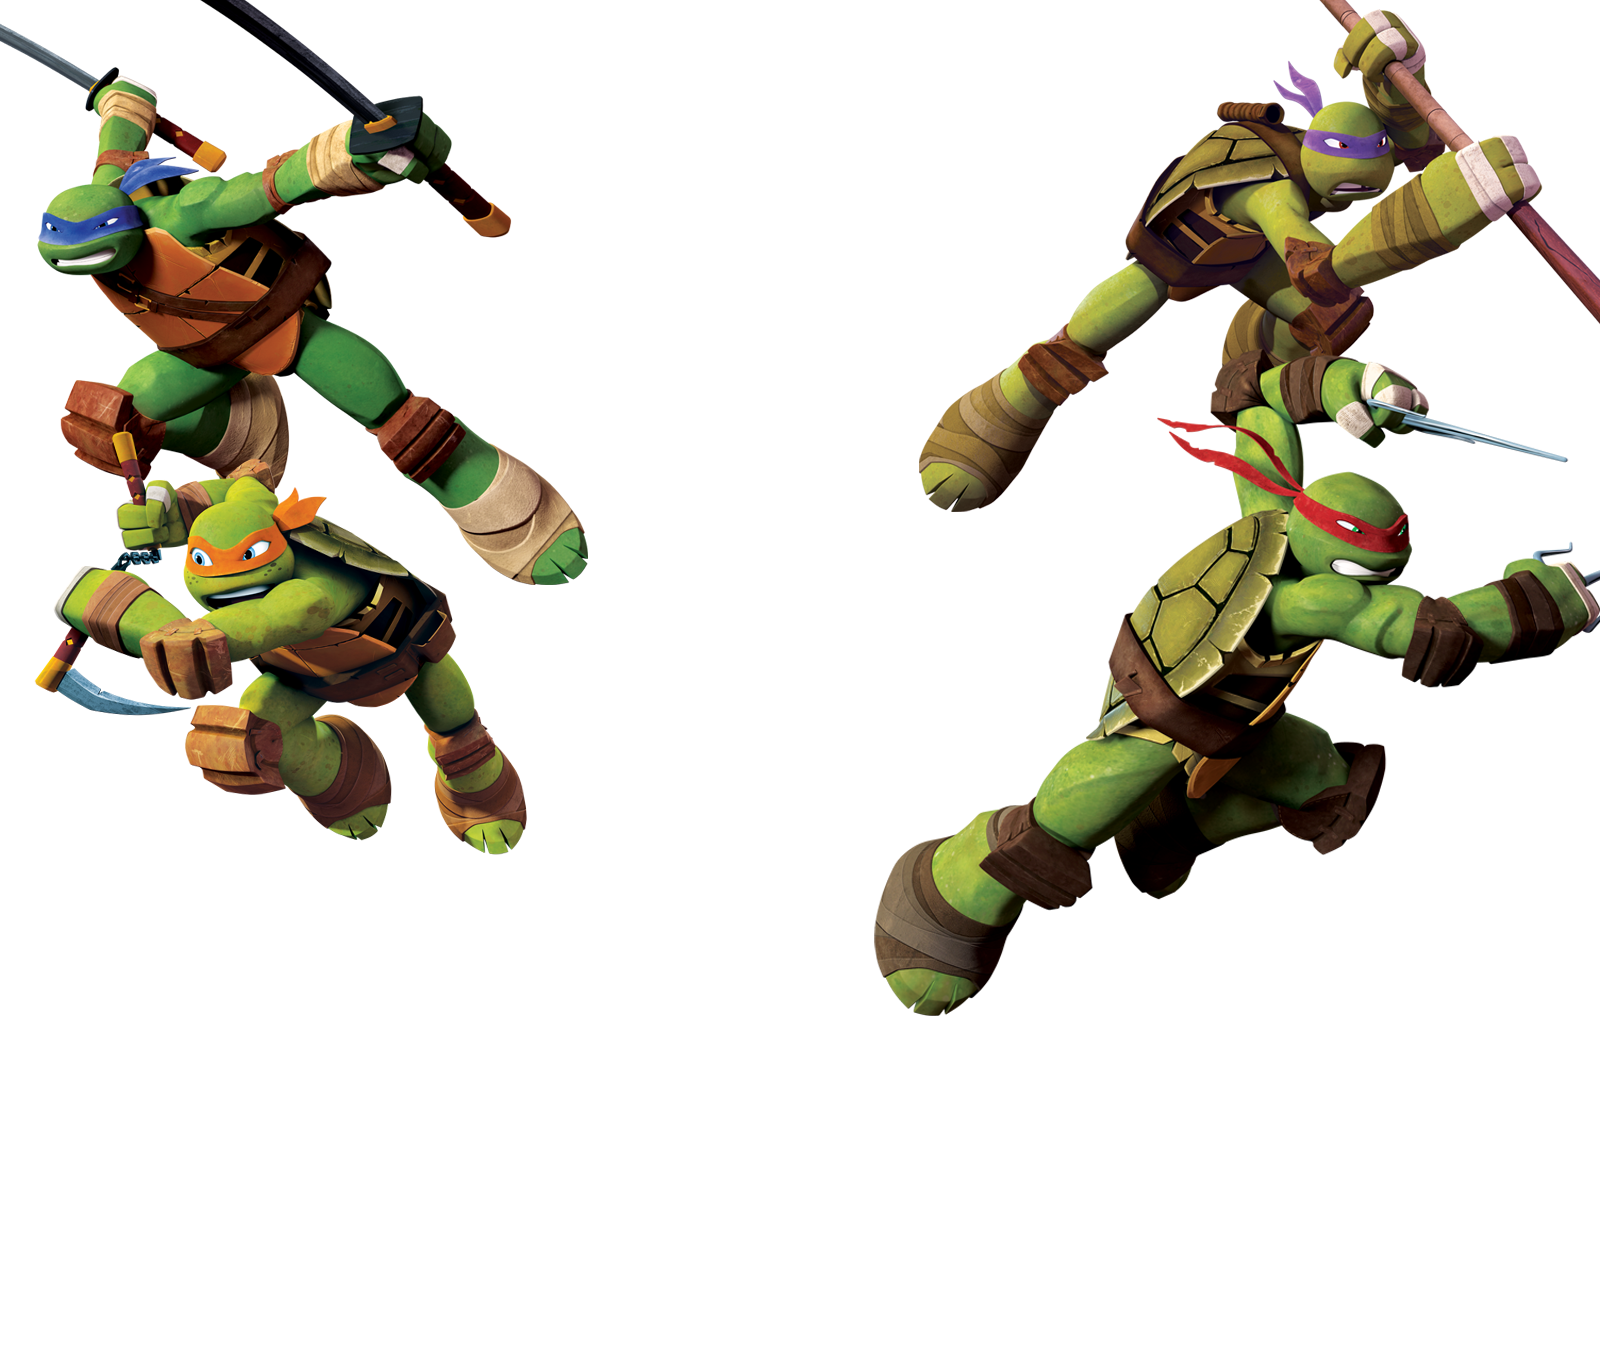 Teenage mutant ninja turtles png. Turtle s image purepng